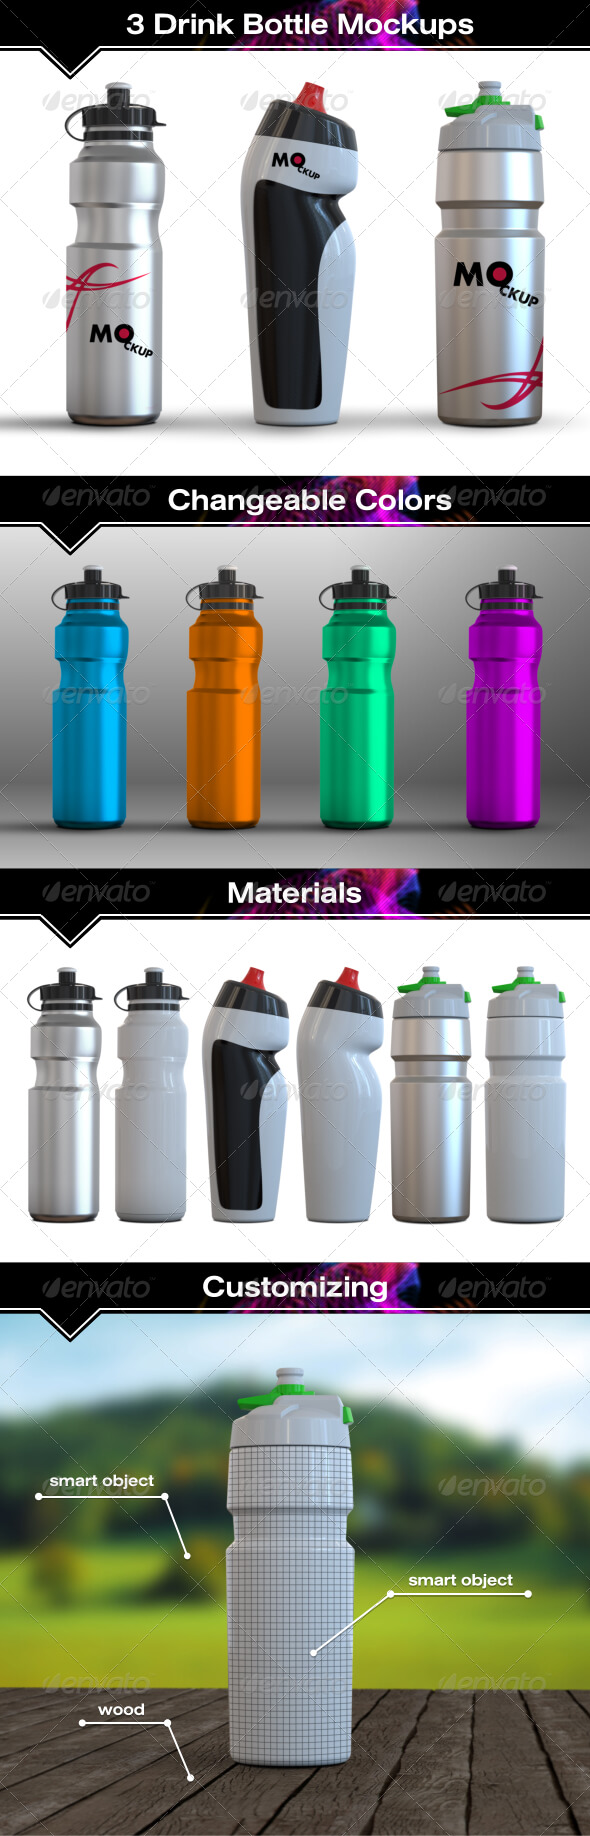 Multi purpose Water Bottle Mockup